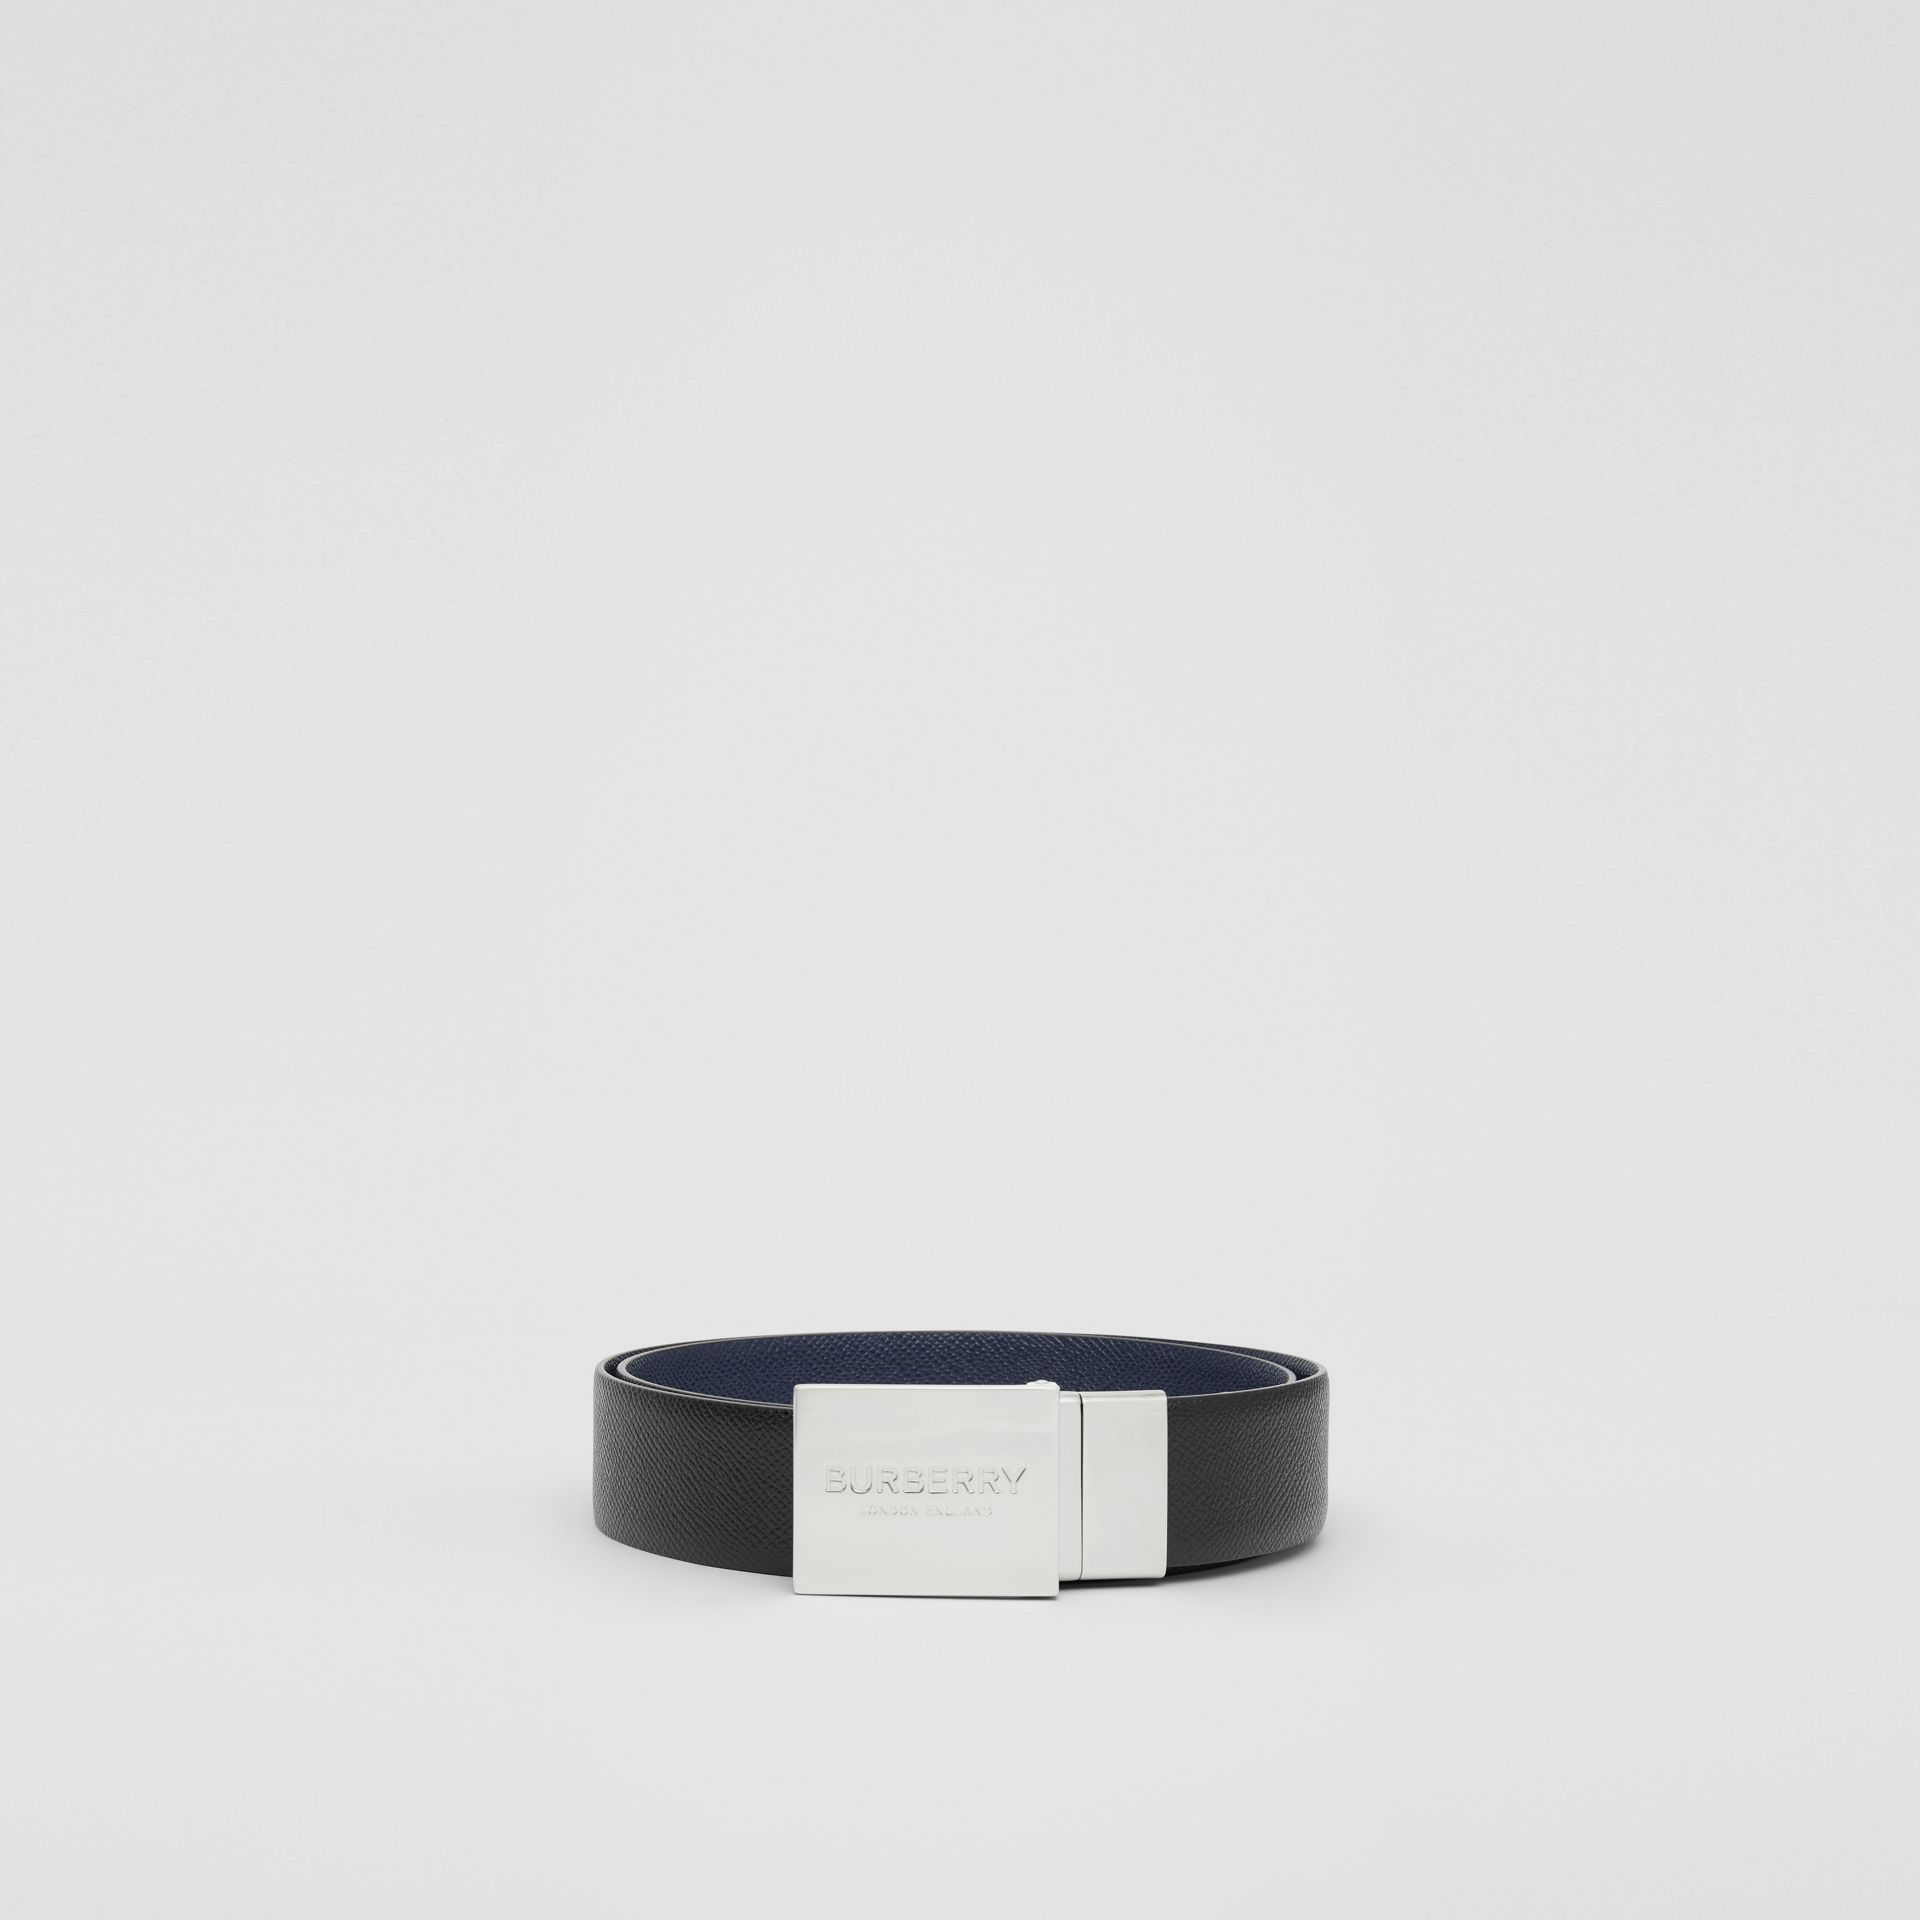 Reversible Plaque Buckle Grainy Leather Belt in Black/navy - Men | Burberry United Kingdom - gallery image 3